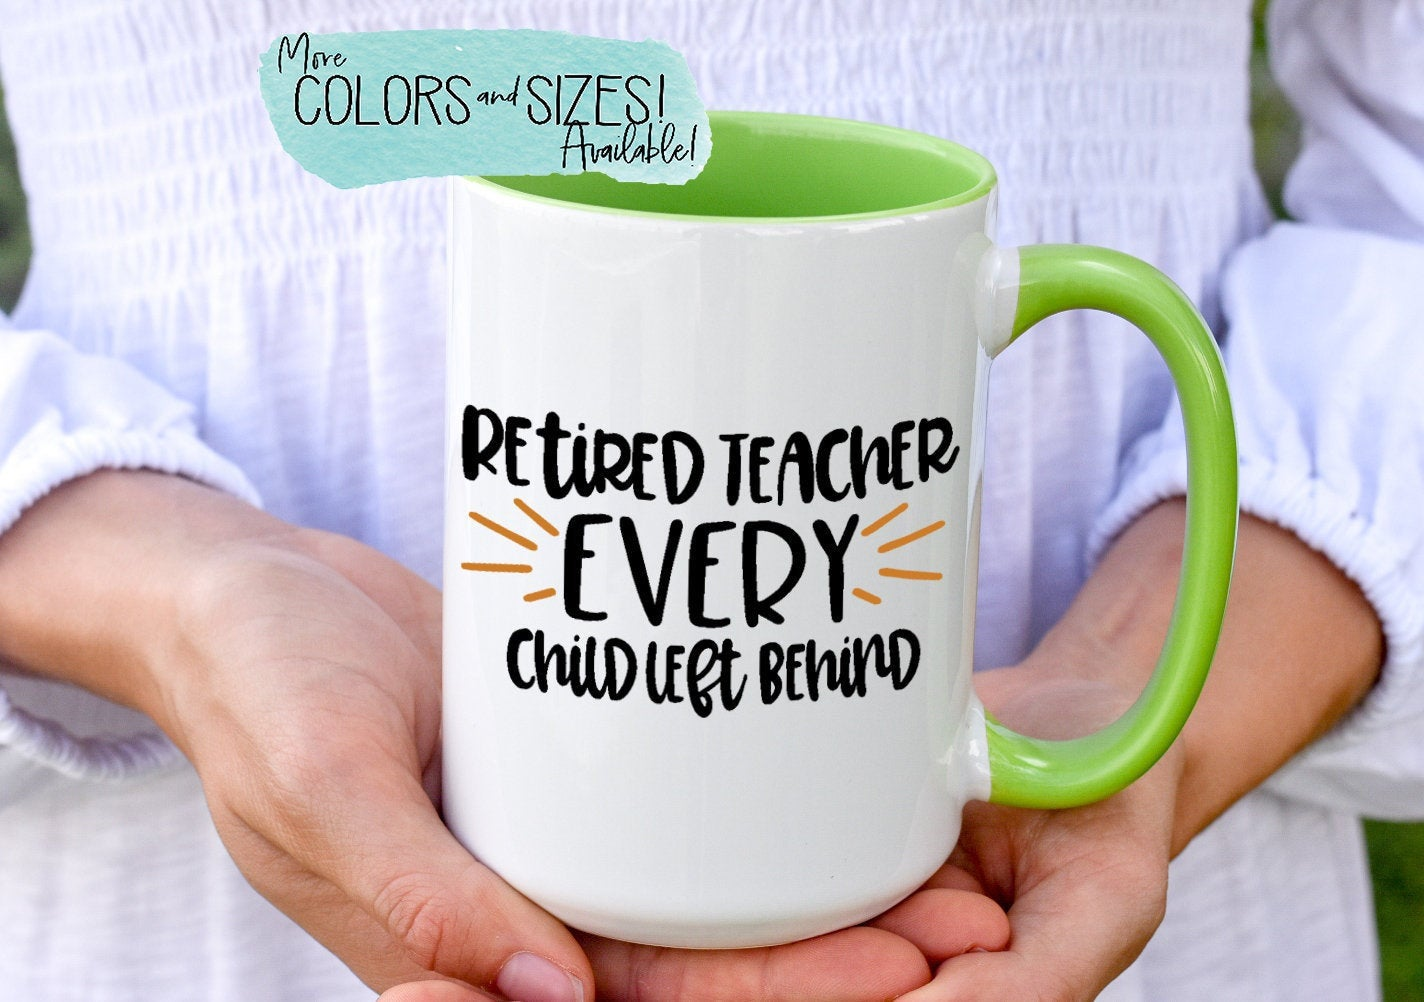 Teacher Retirement Gift, Retired Teacher Every Student Left Behind Coffee Mug, Happy Retirement Teacher Gift, Retiring Teacher Tea Cup S309